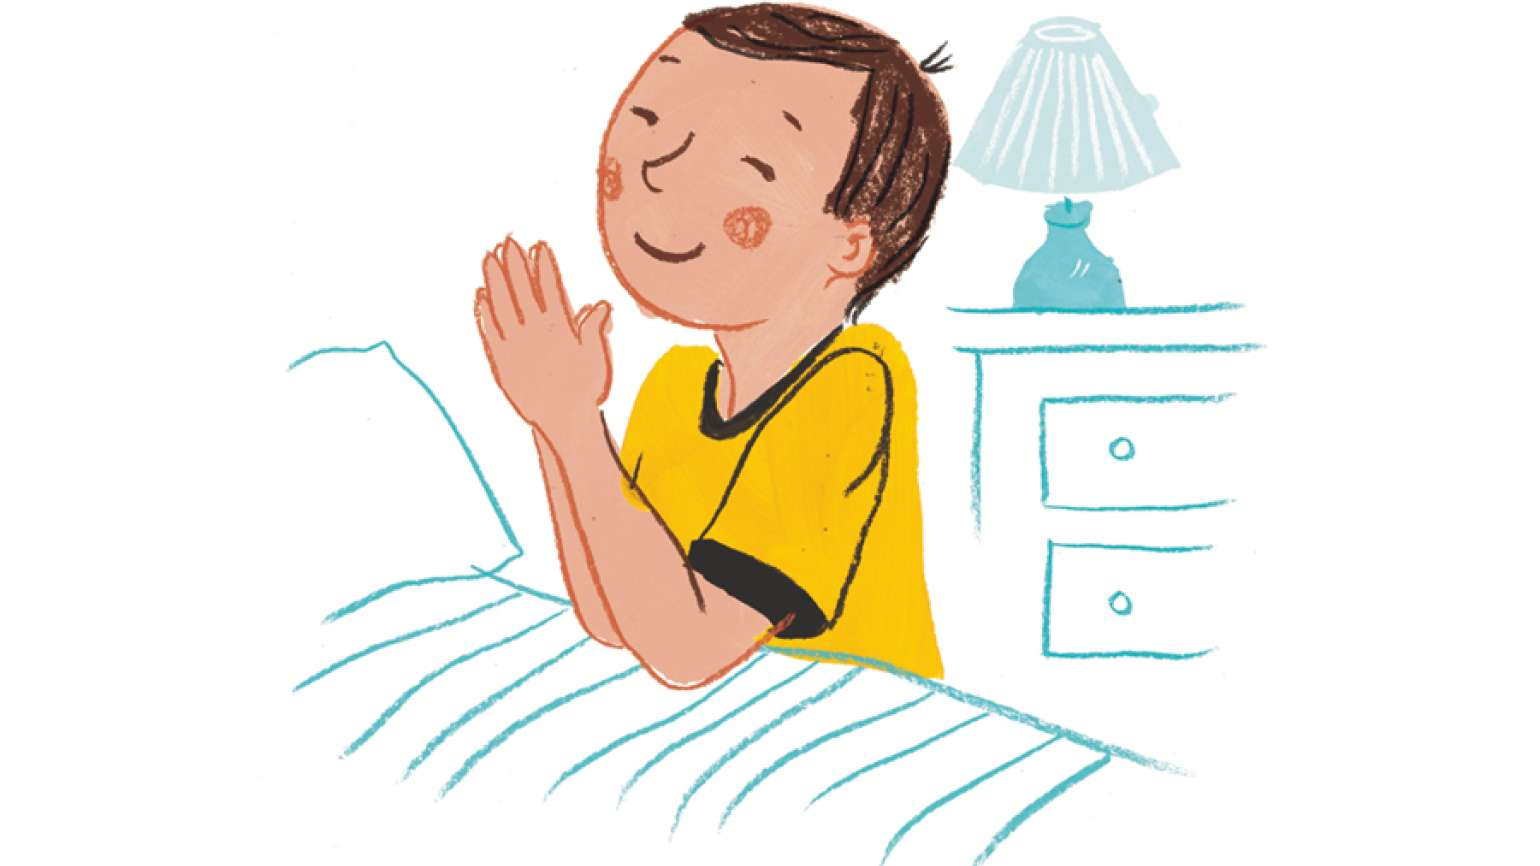 An artist's rendering of a small boy kneeling in prayer at his bedside